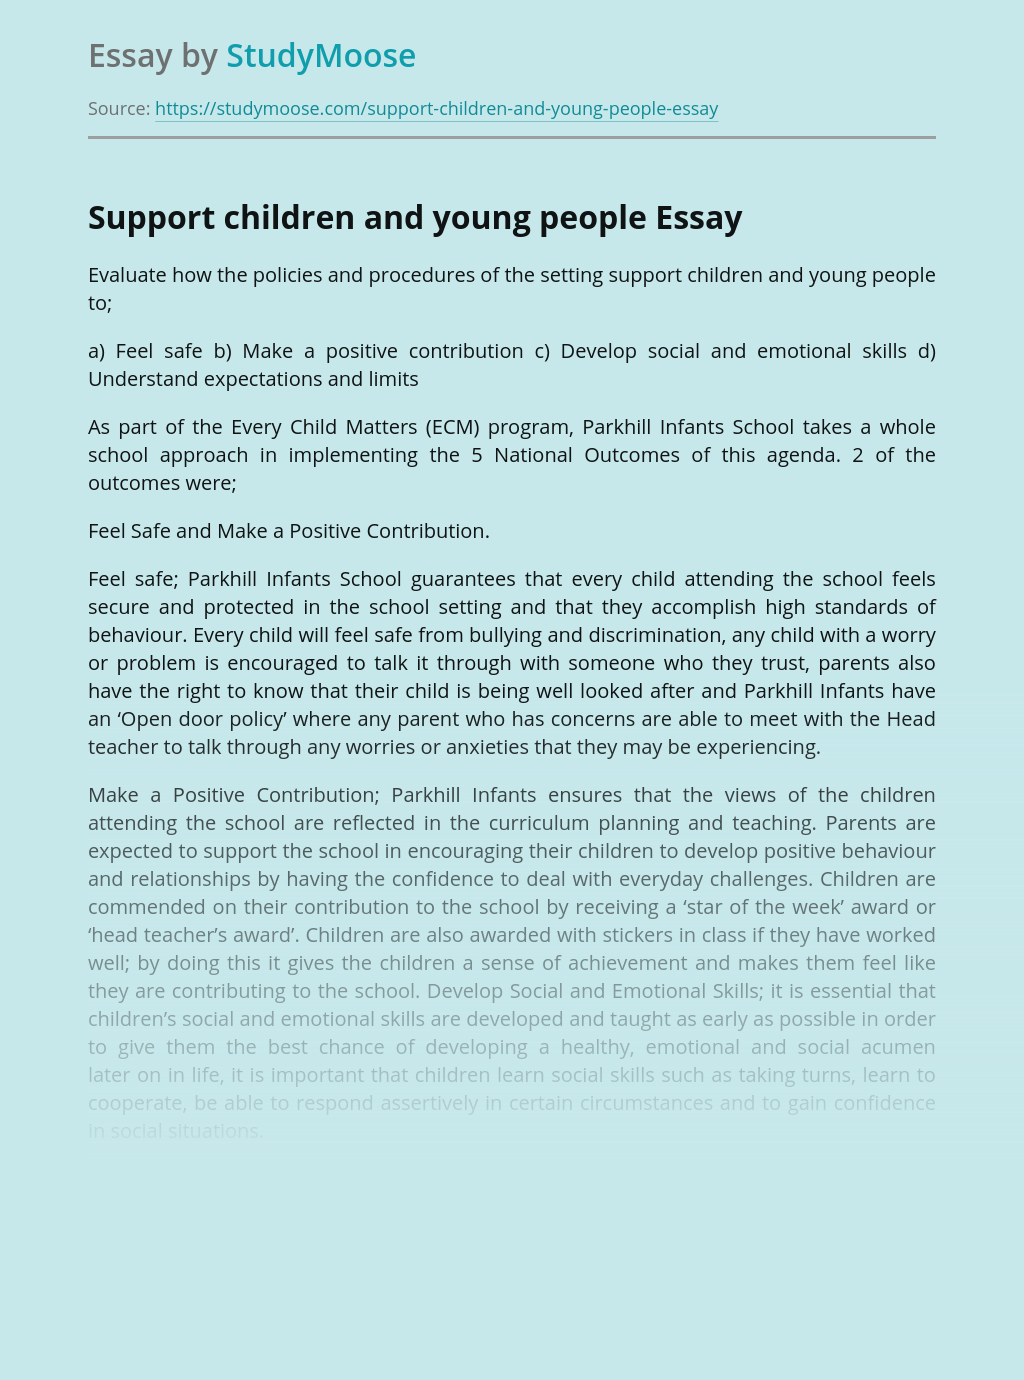 Support children and young people